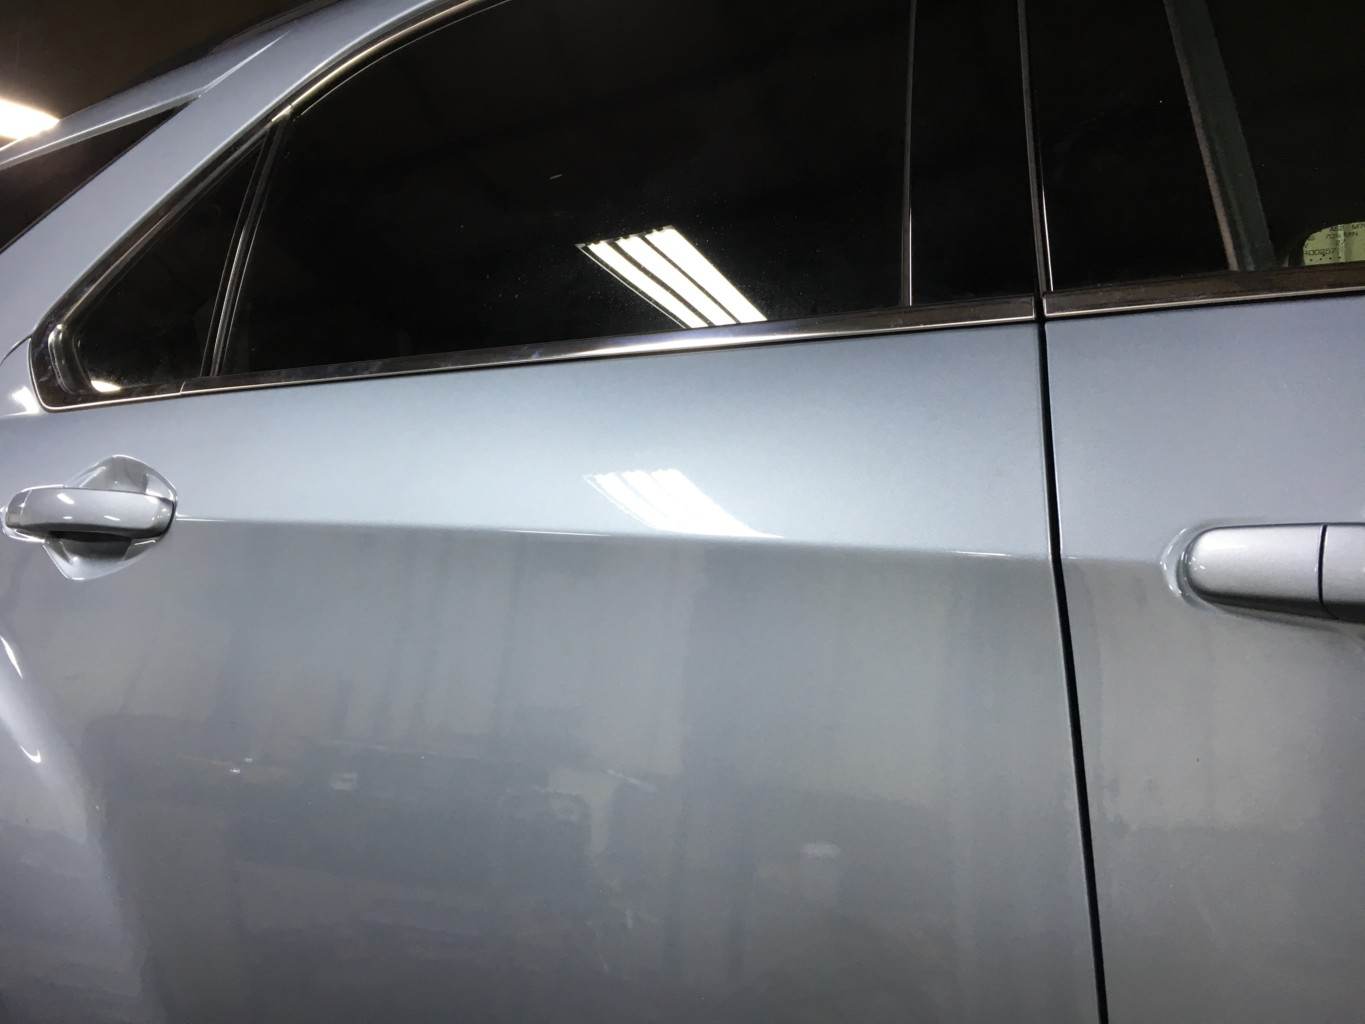 Paintless Dent Repair Grand Rapids, Michigan: Equinox door - after